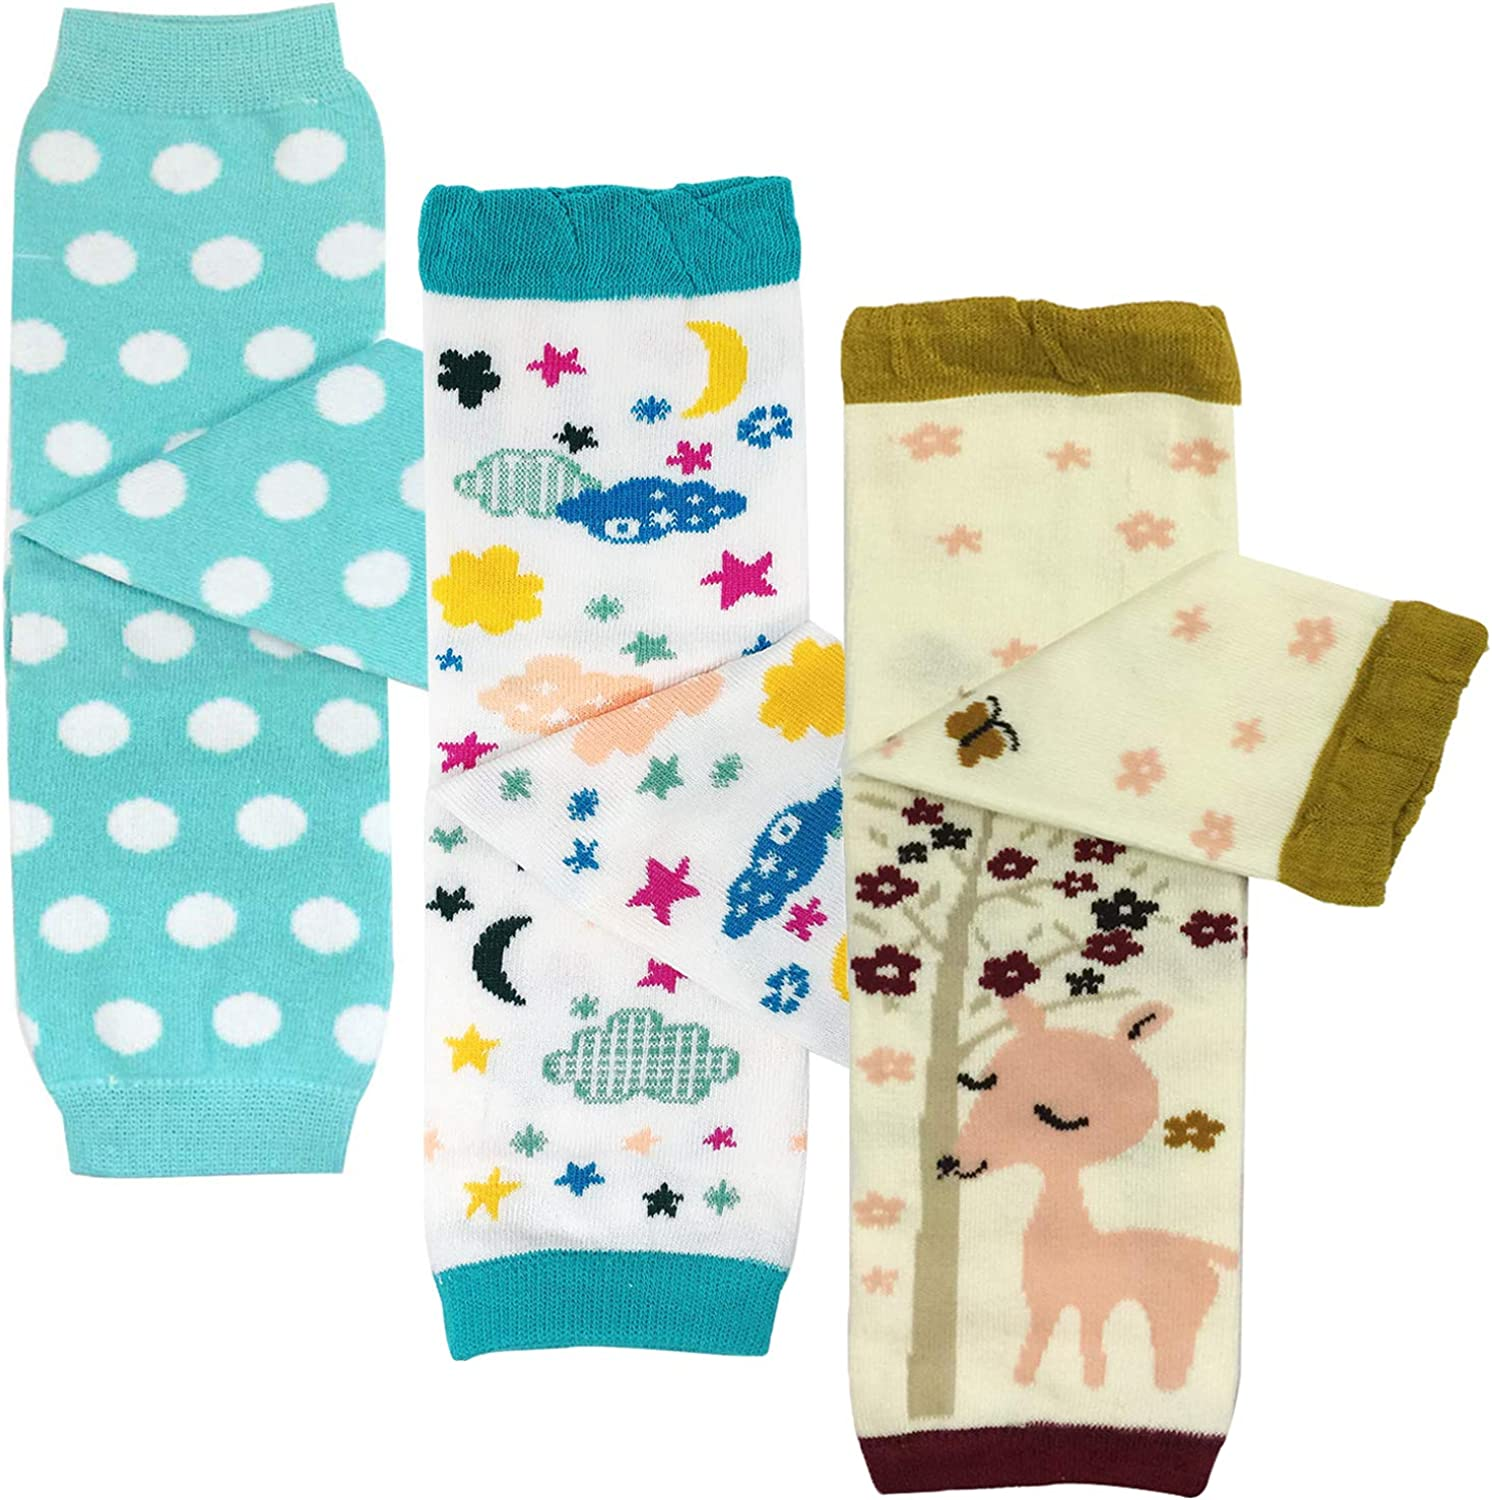 Set of 3 allydrew Playful Patterns Baby /& Toddler Leg Warmers